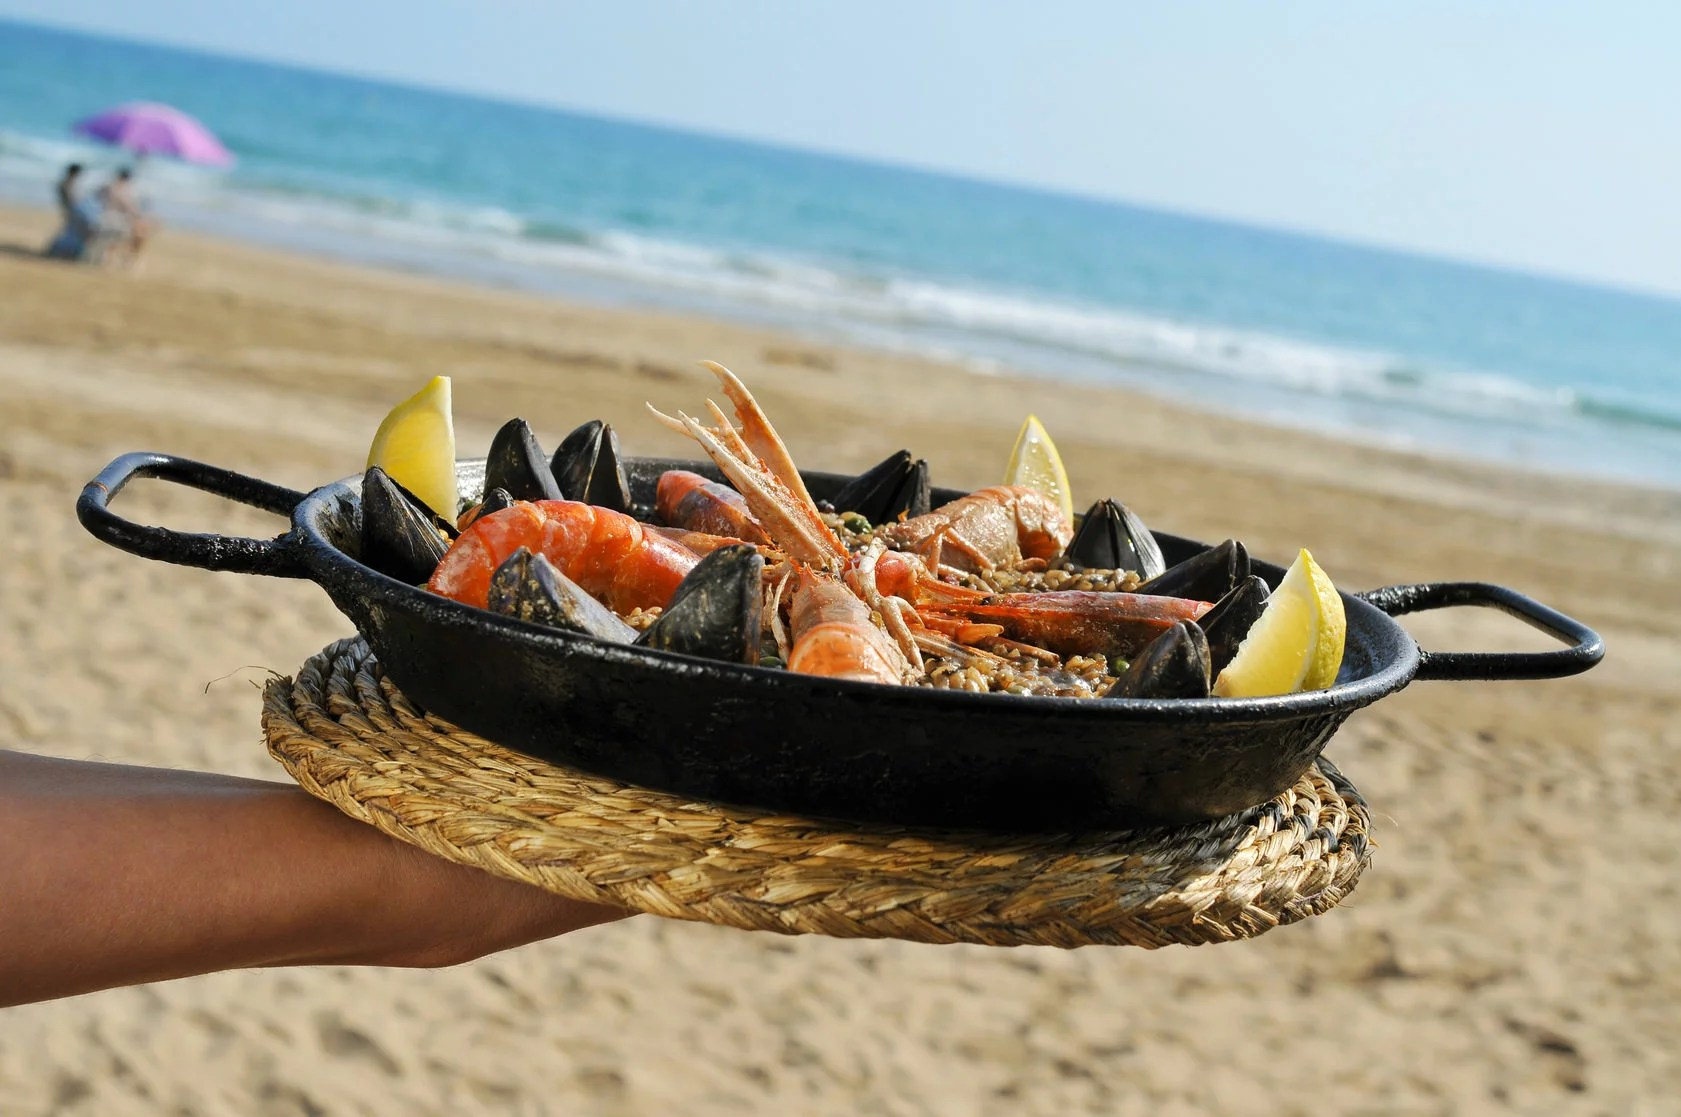 32139727 - a typical spanish paella with seafood in a paellera, the paella pan, on the beach